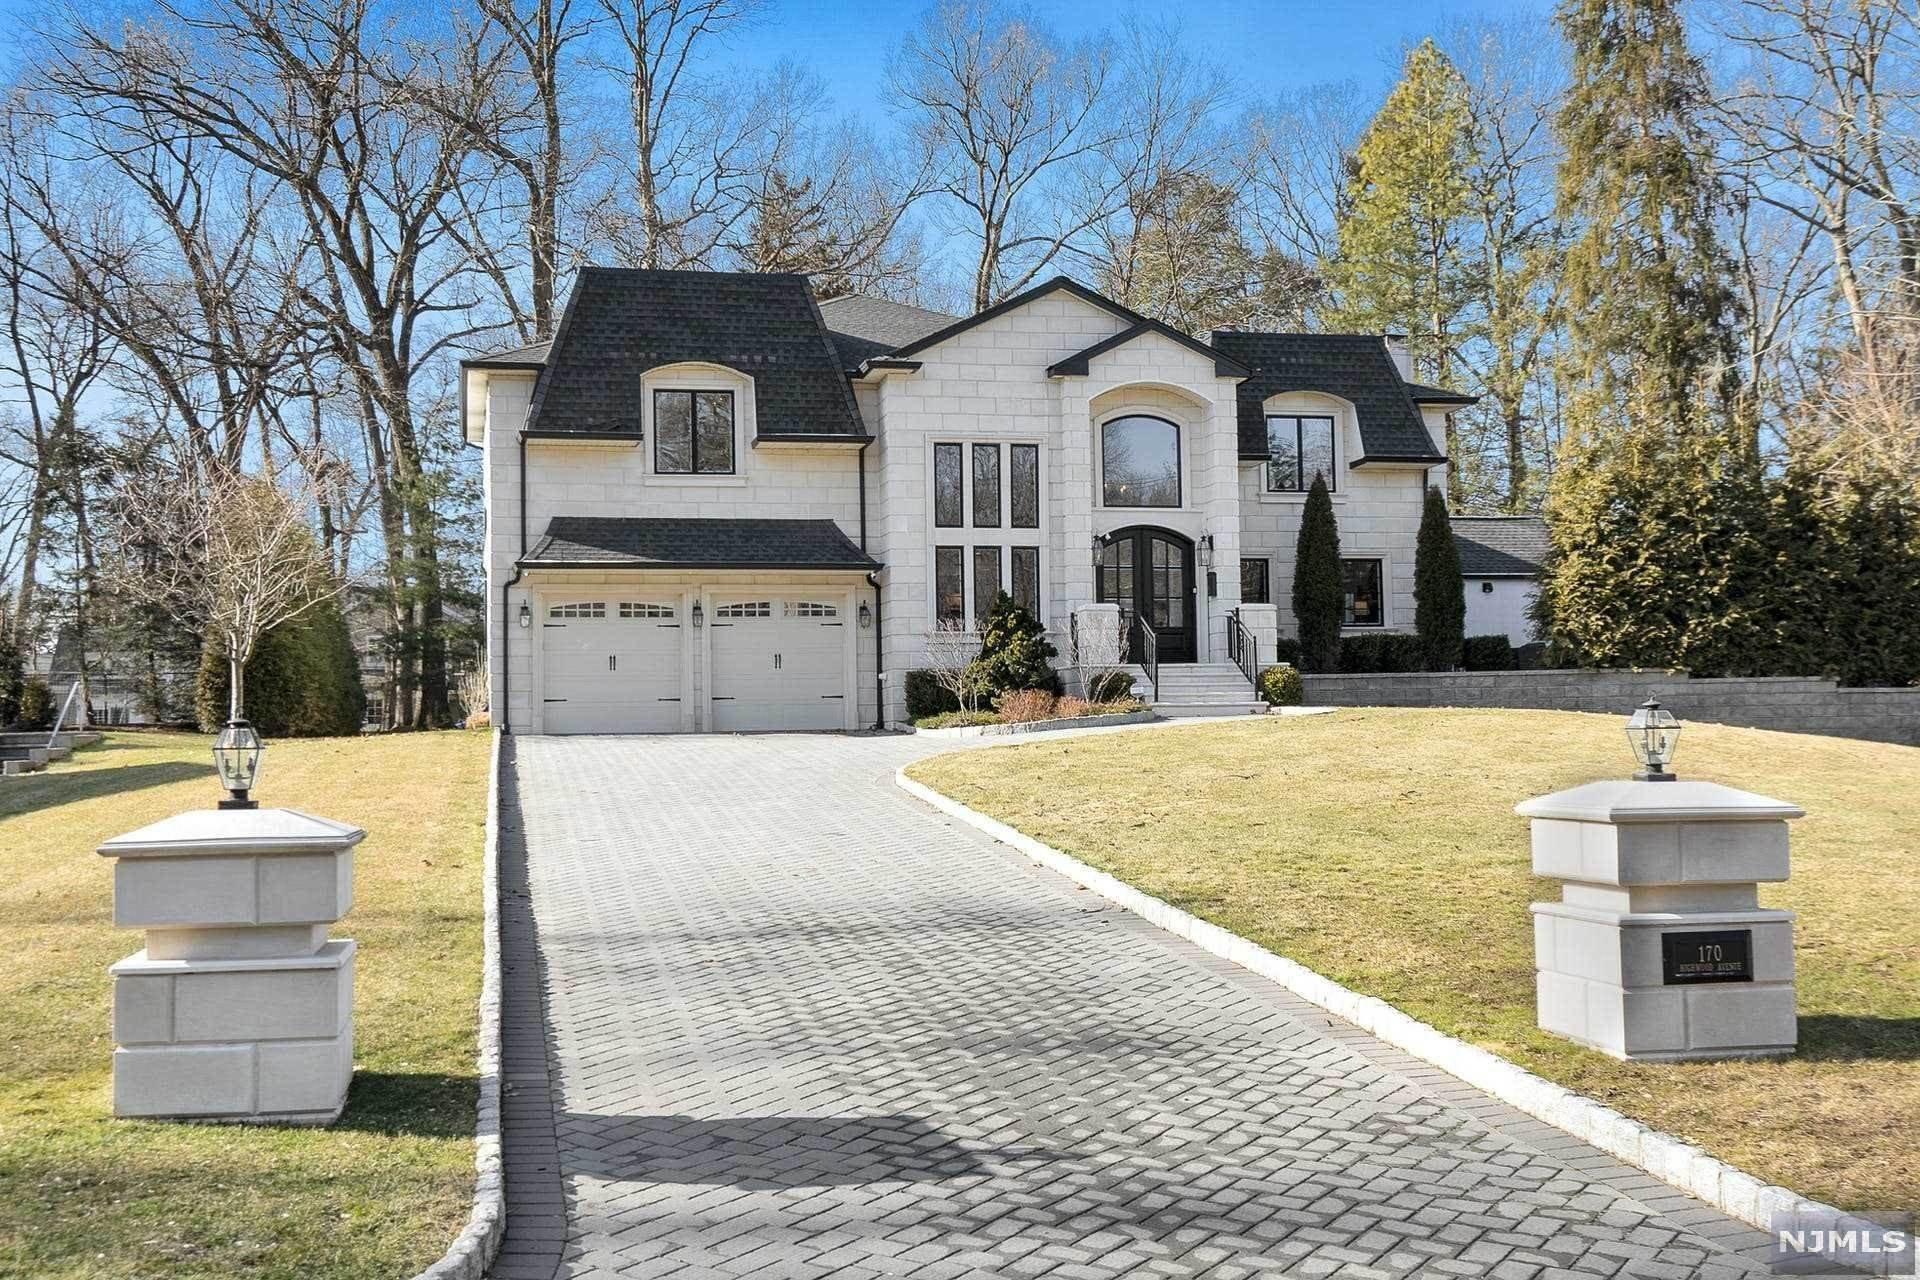 Single Family Home for Sale at 170 Highwood Avenue Tenafly, New Jersey, 07670 United States